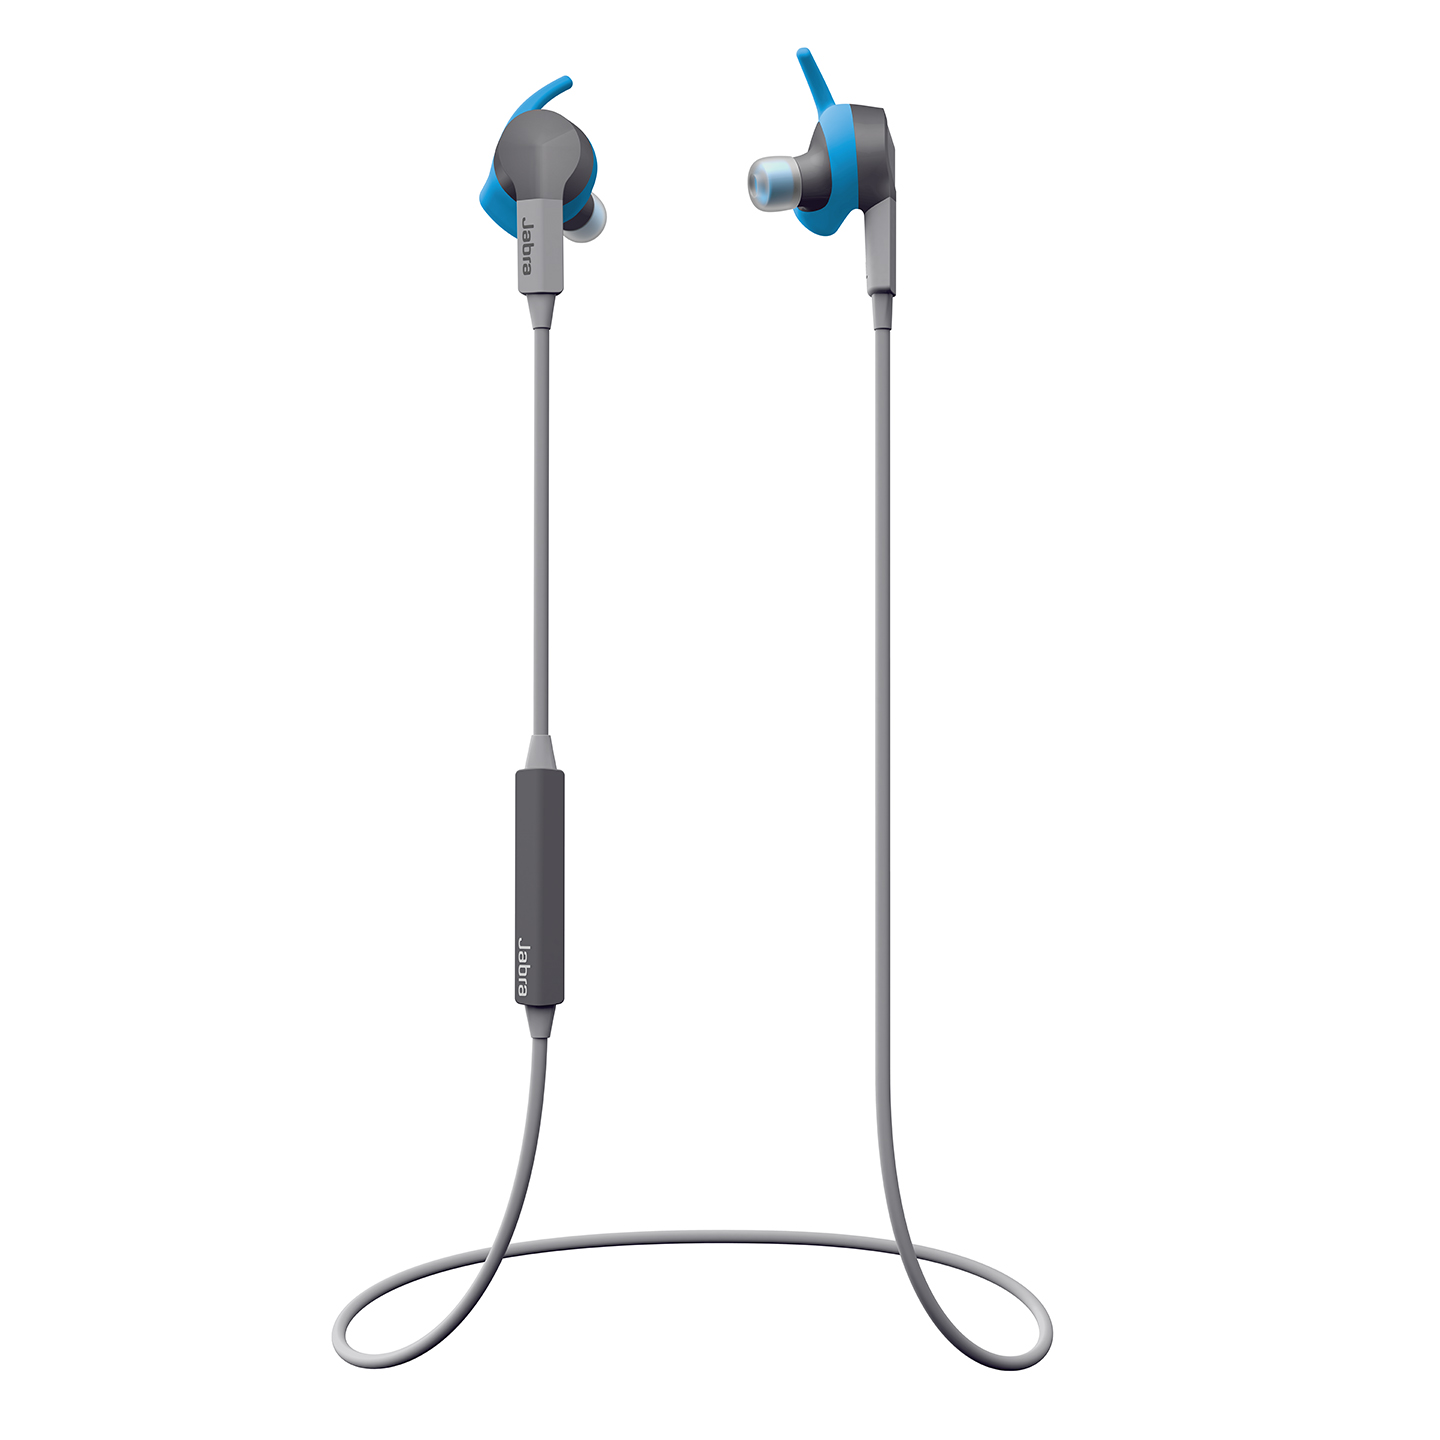 Sport bluetooth гарнитура jabra motion uc ms 6630 900 301 серый 6630 900 301